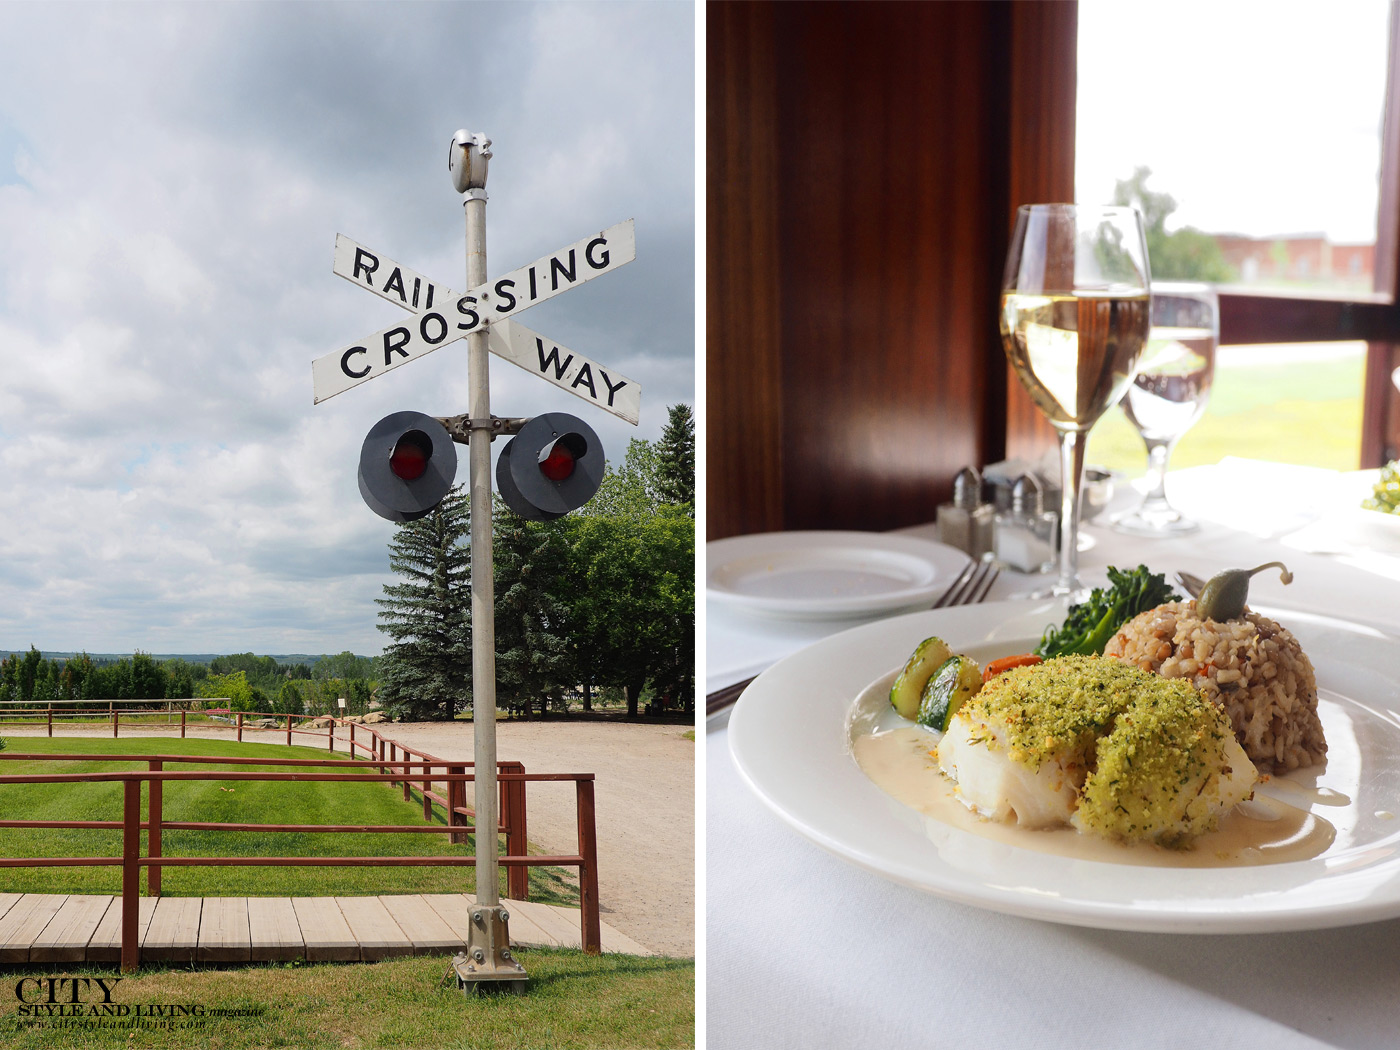 City Style and Living Magazine Travel Epic Train journeys in southern Alberta Heritage Park railway crossing and halibut lunch